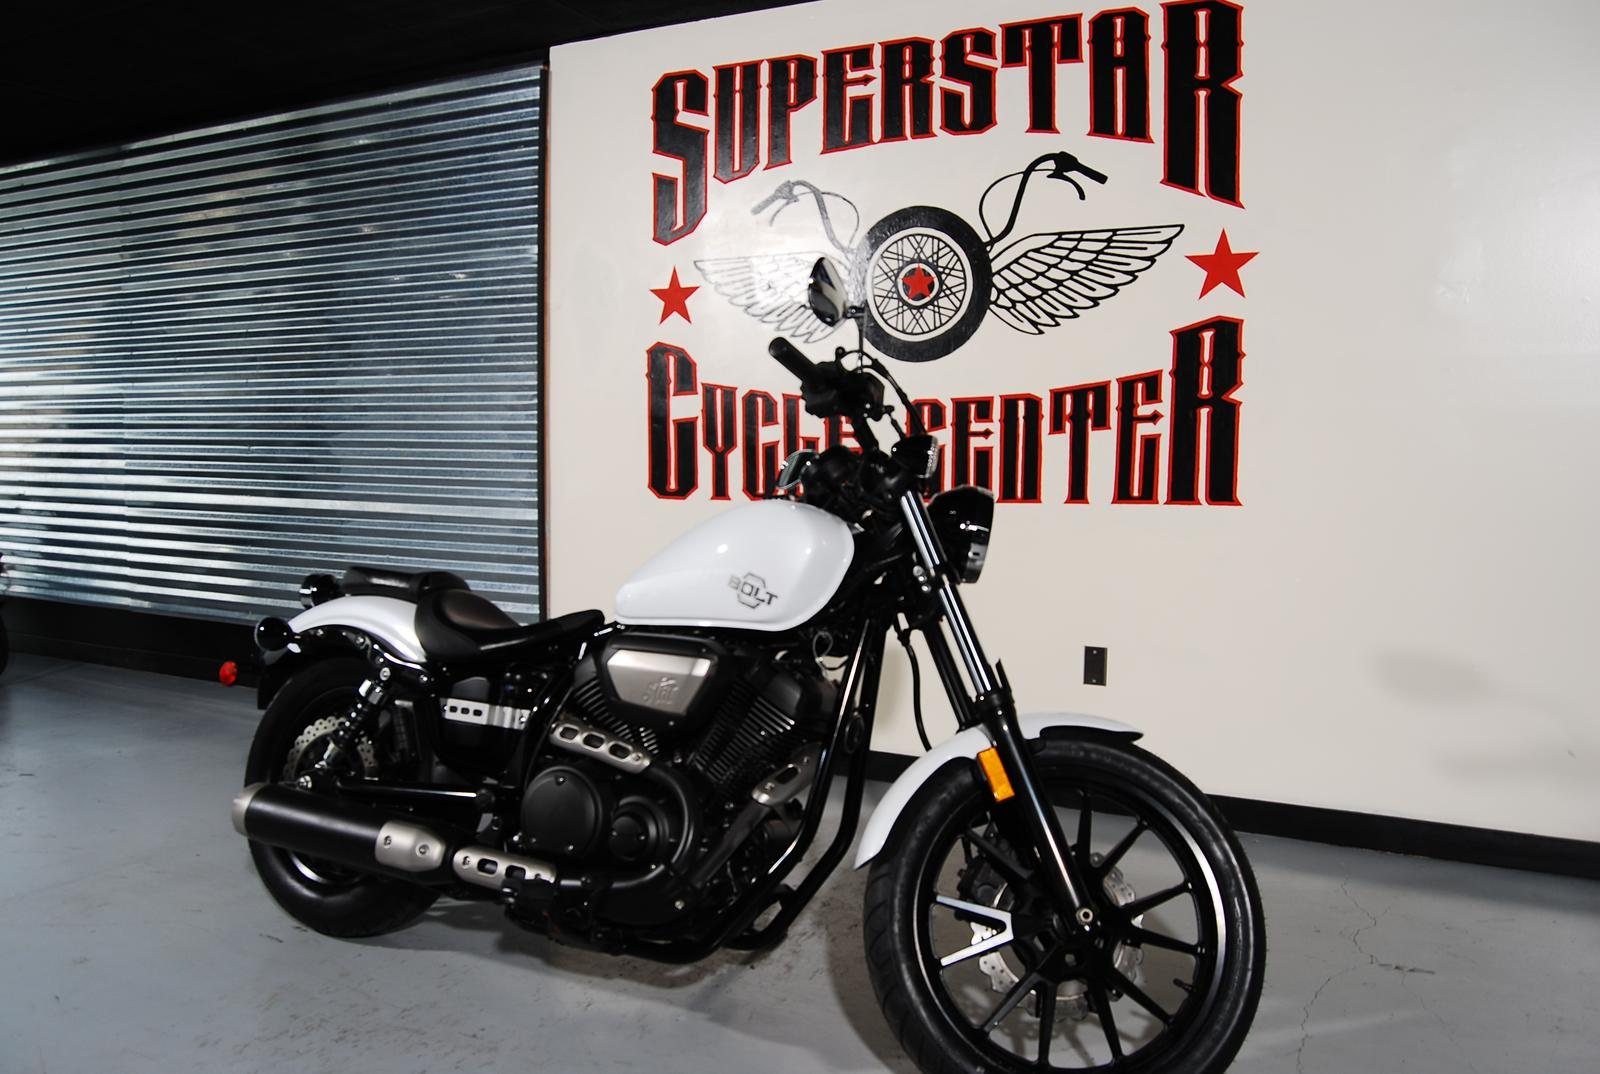 Inventory From Yamaha Superstar Cycle Center Independence MO 816